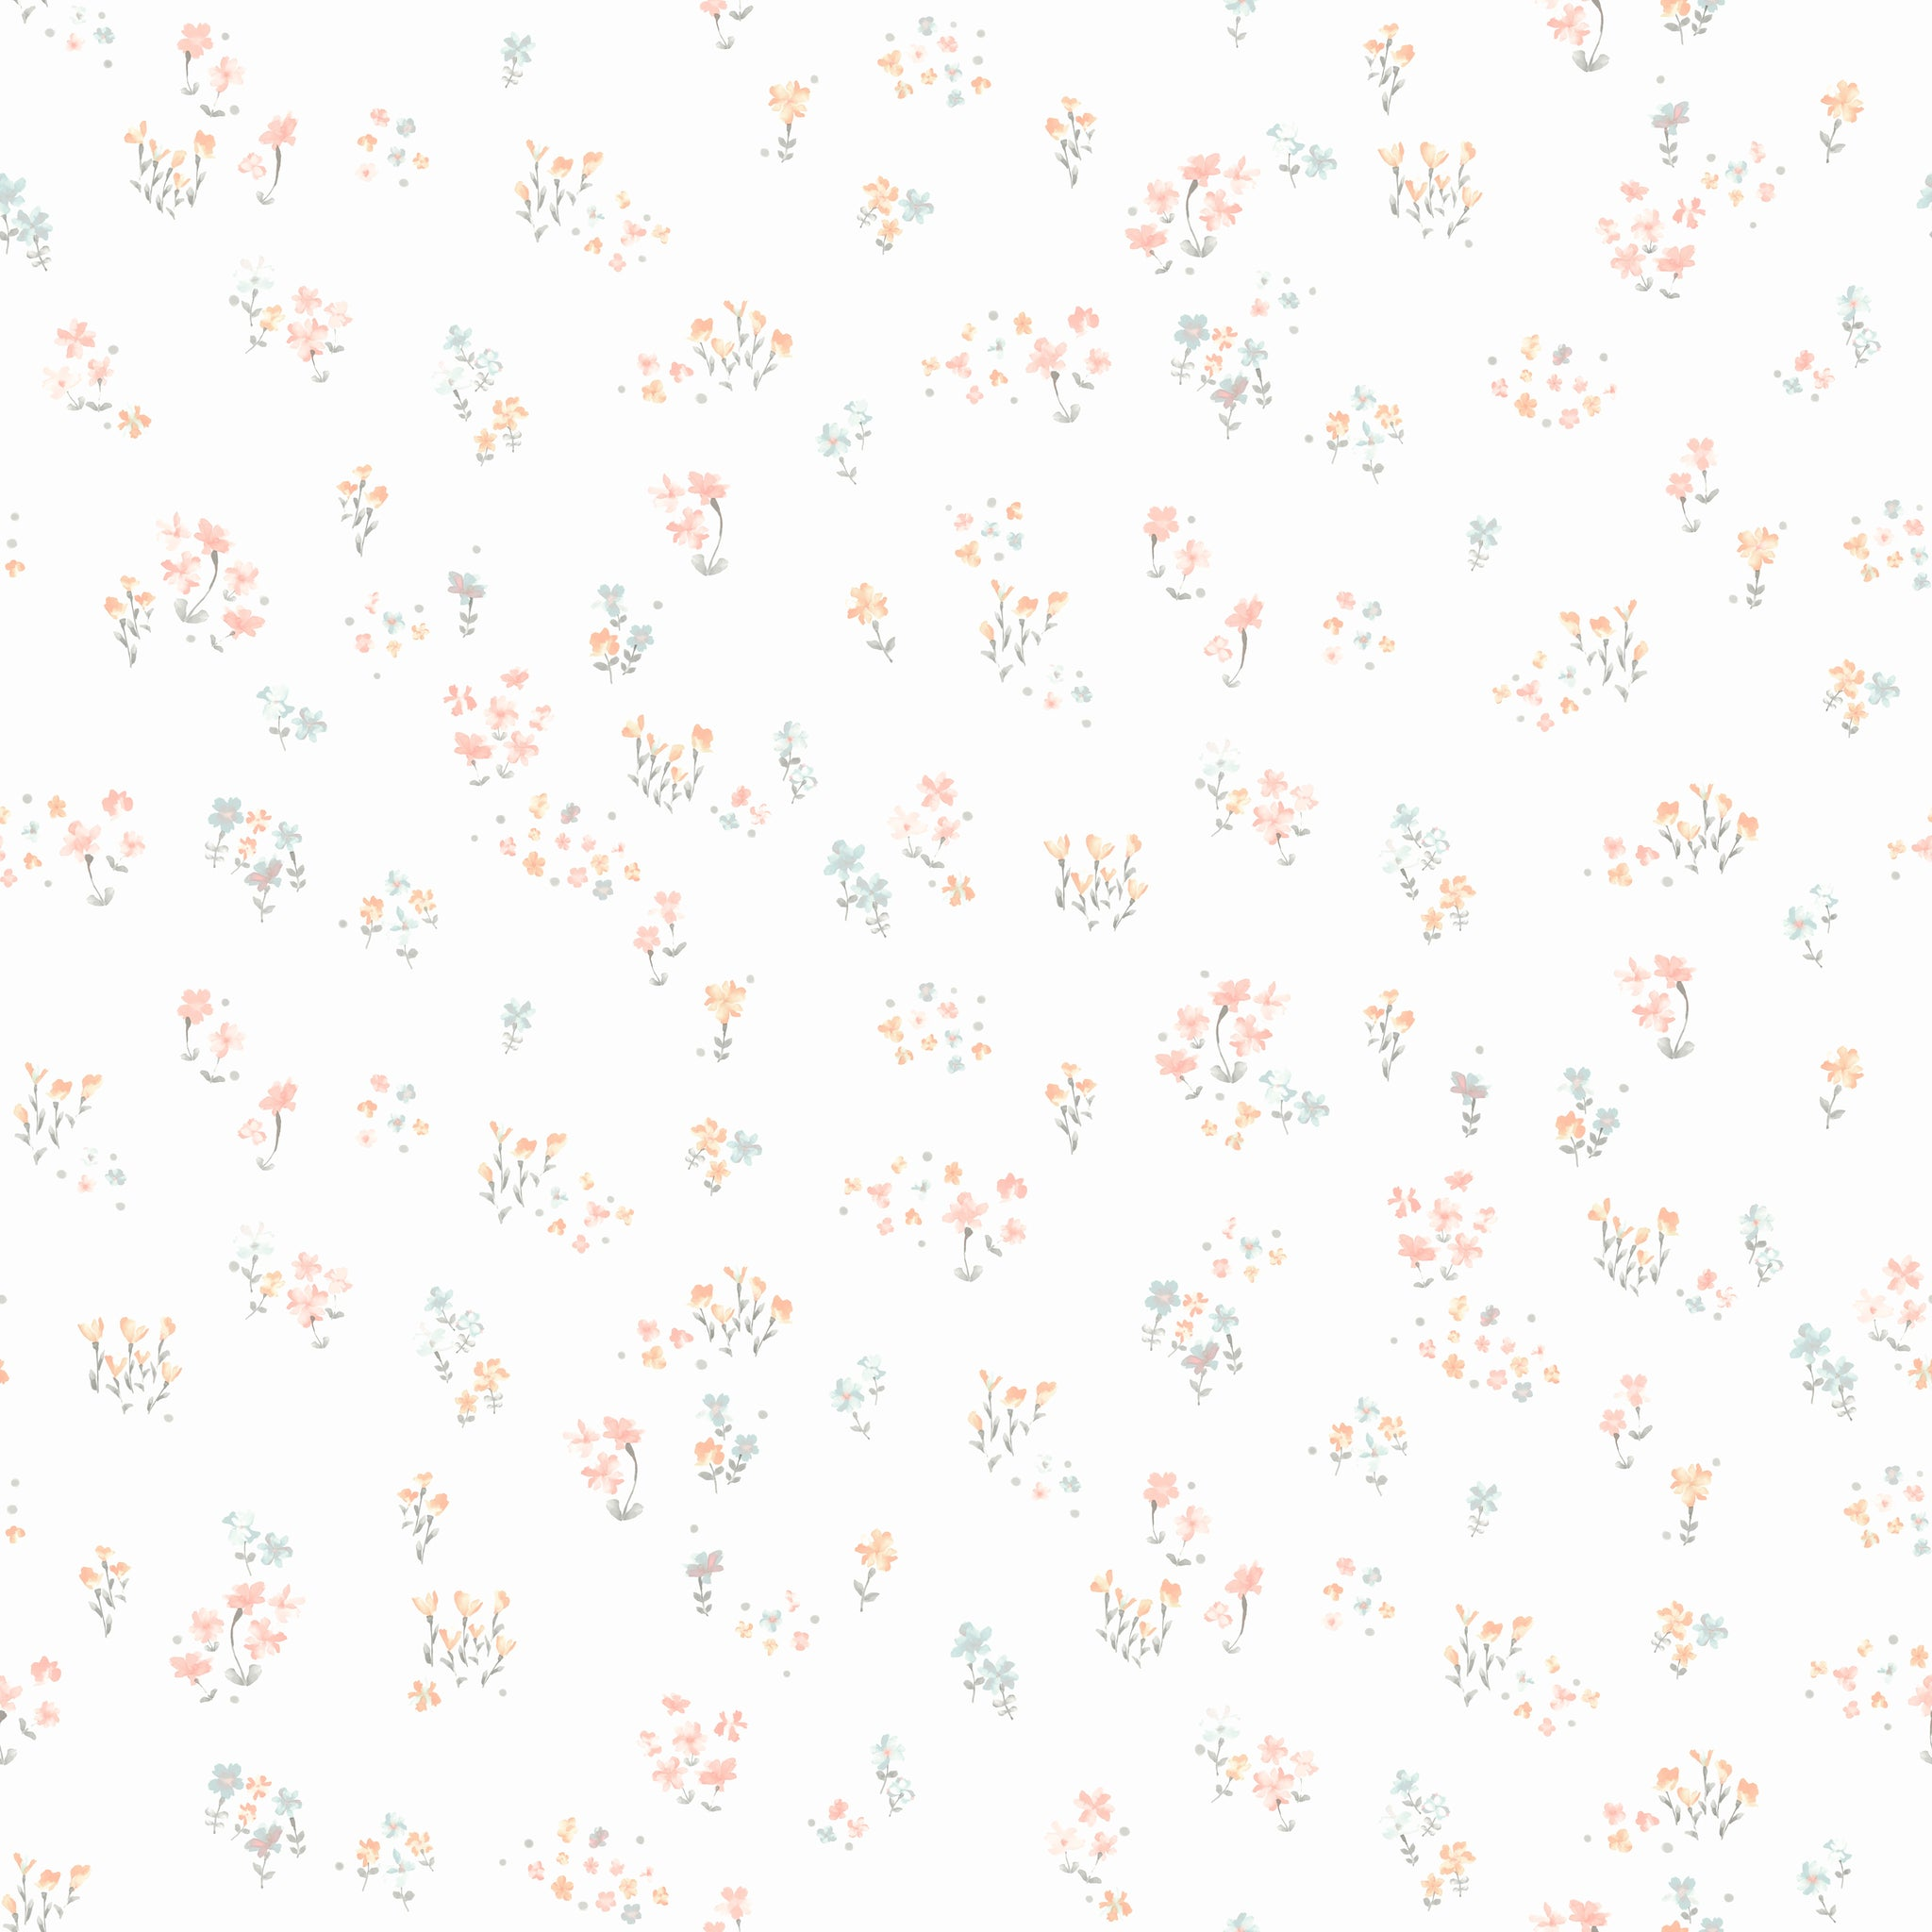 Watercolor Floral BouquetWallpaper in Peach,Aqua